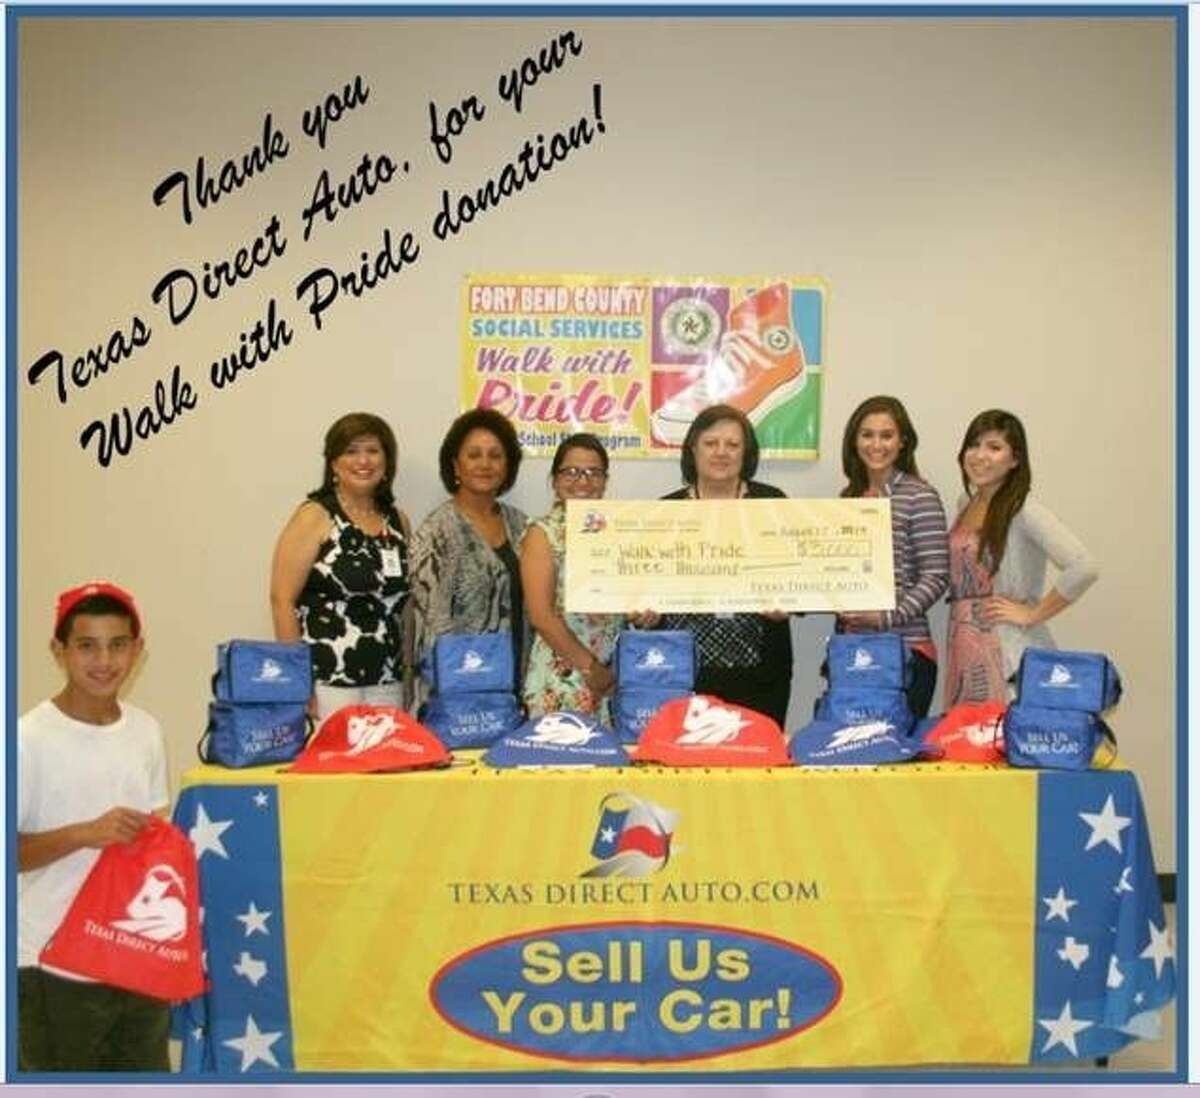 Texas Auto Direct presents a 3,000 check to the Fort Bend County Department of Social Services for its annual Walk with Pride shoe program.